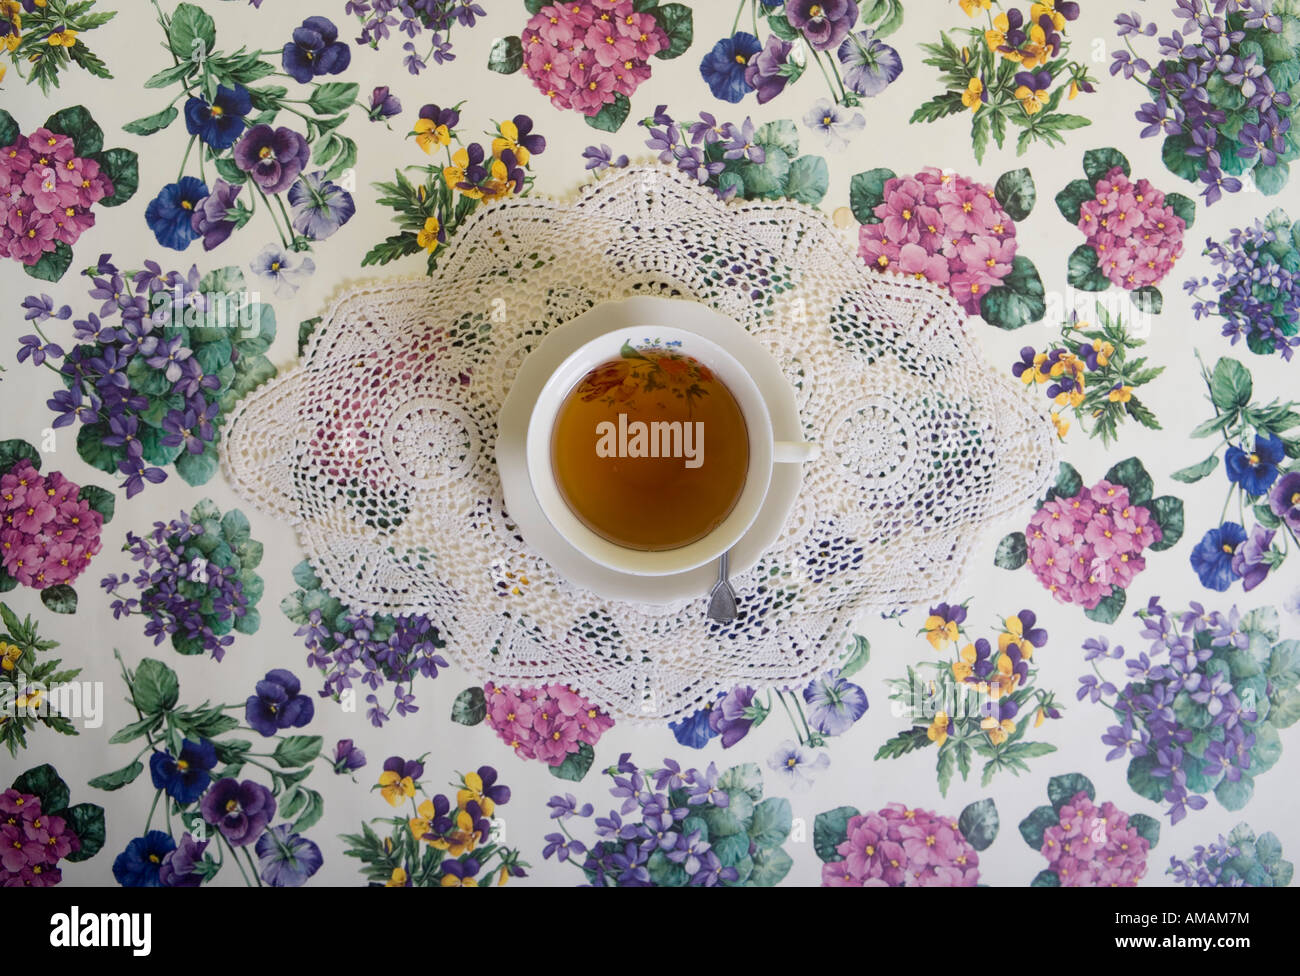 A cup of tea on a floral tablecloth - Stock Image